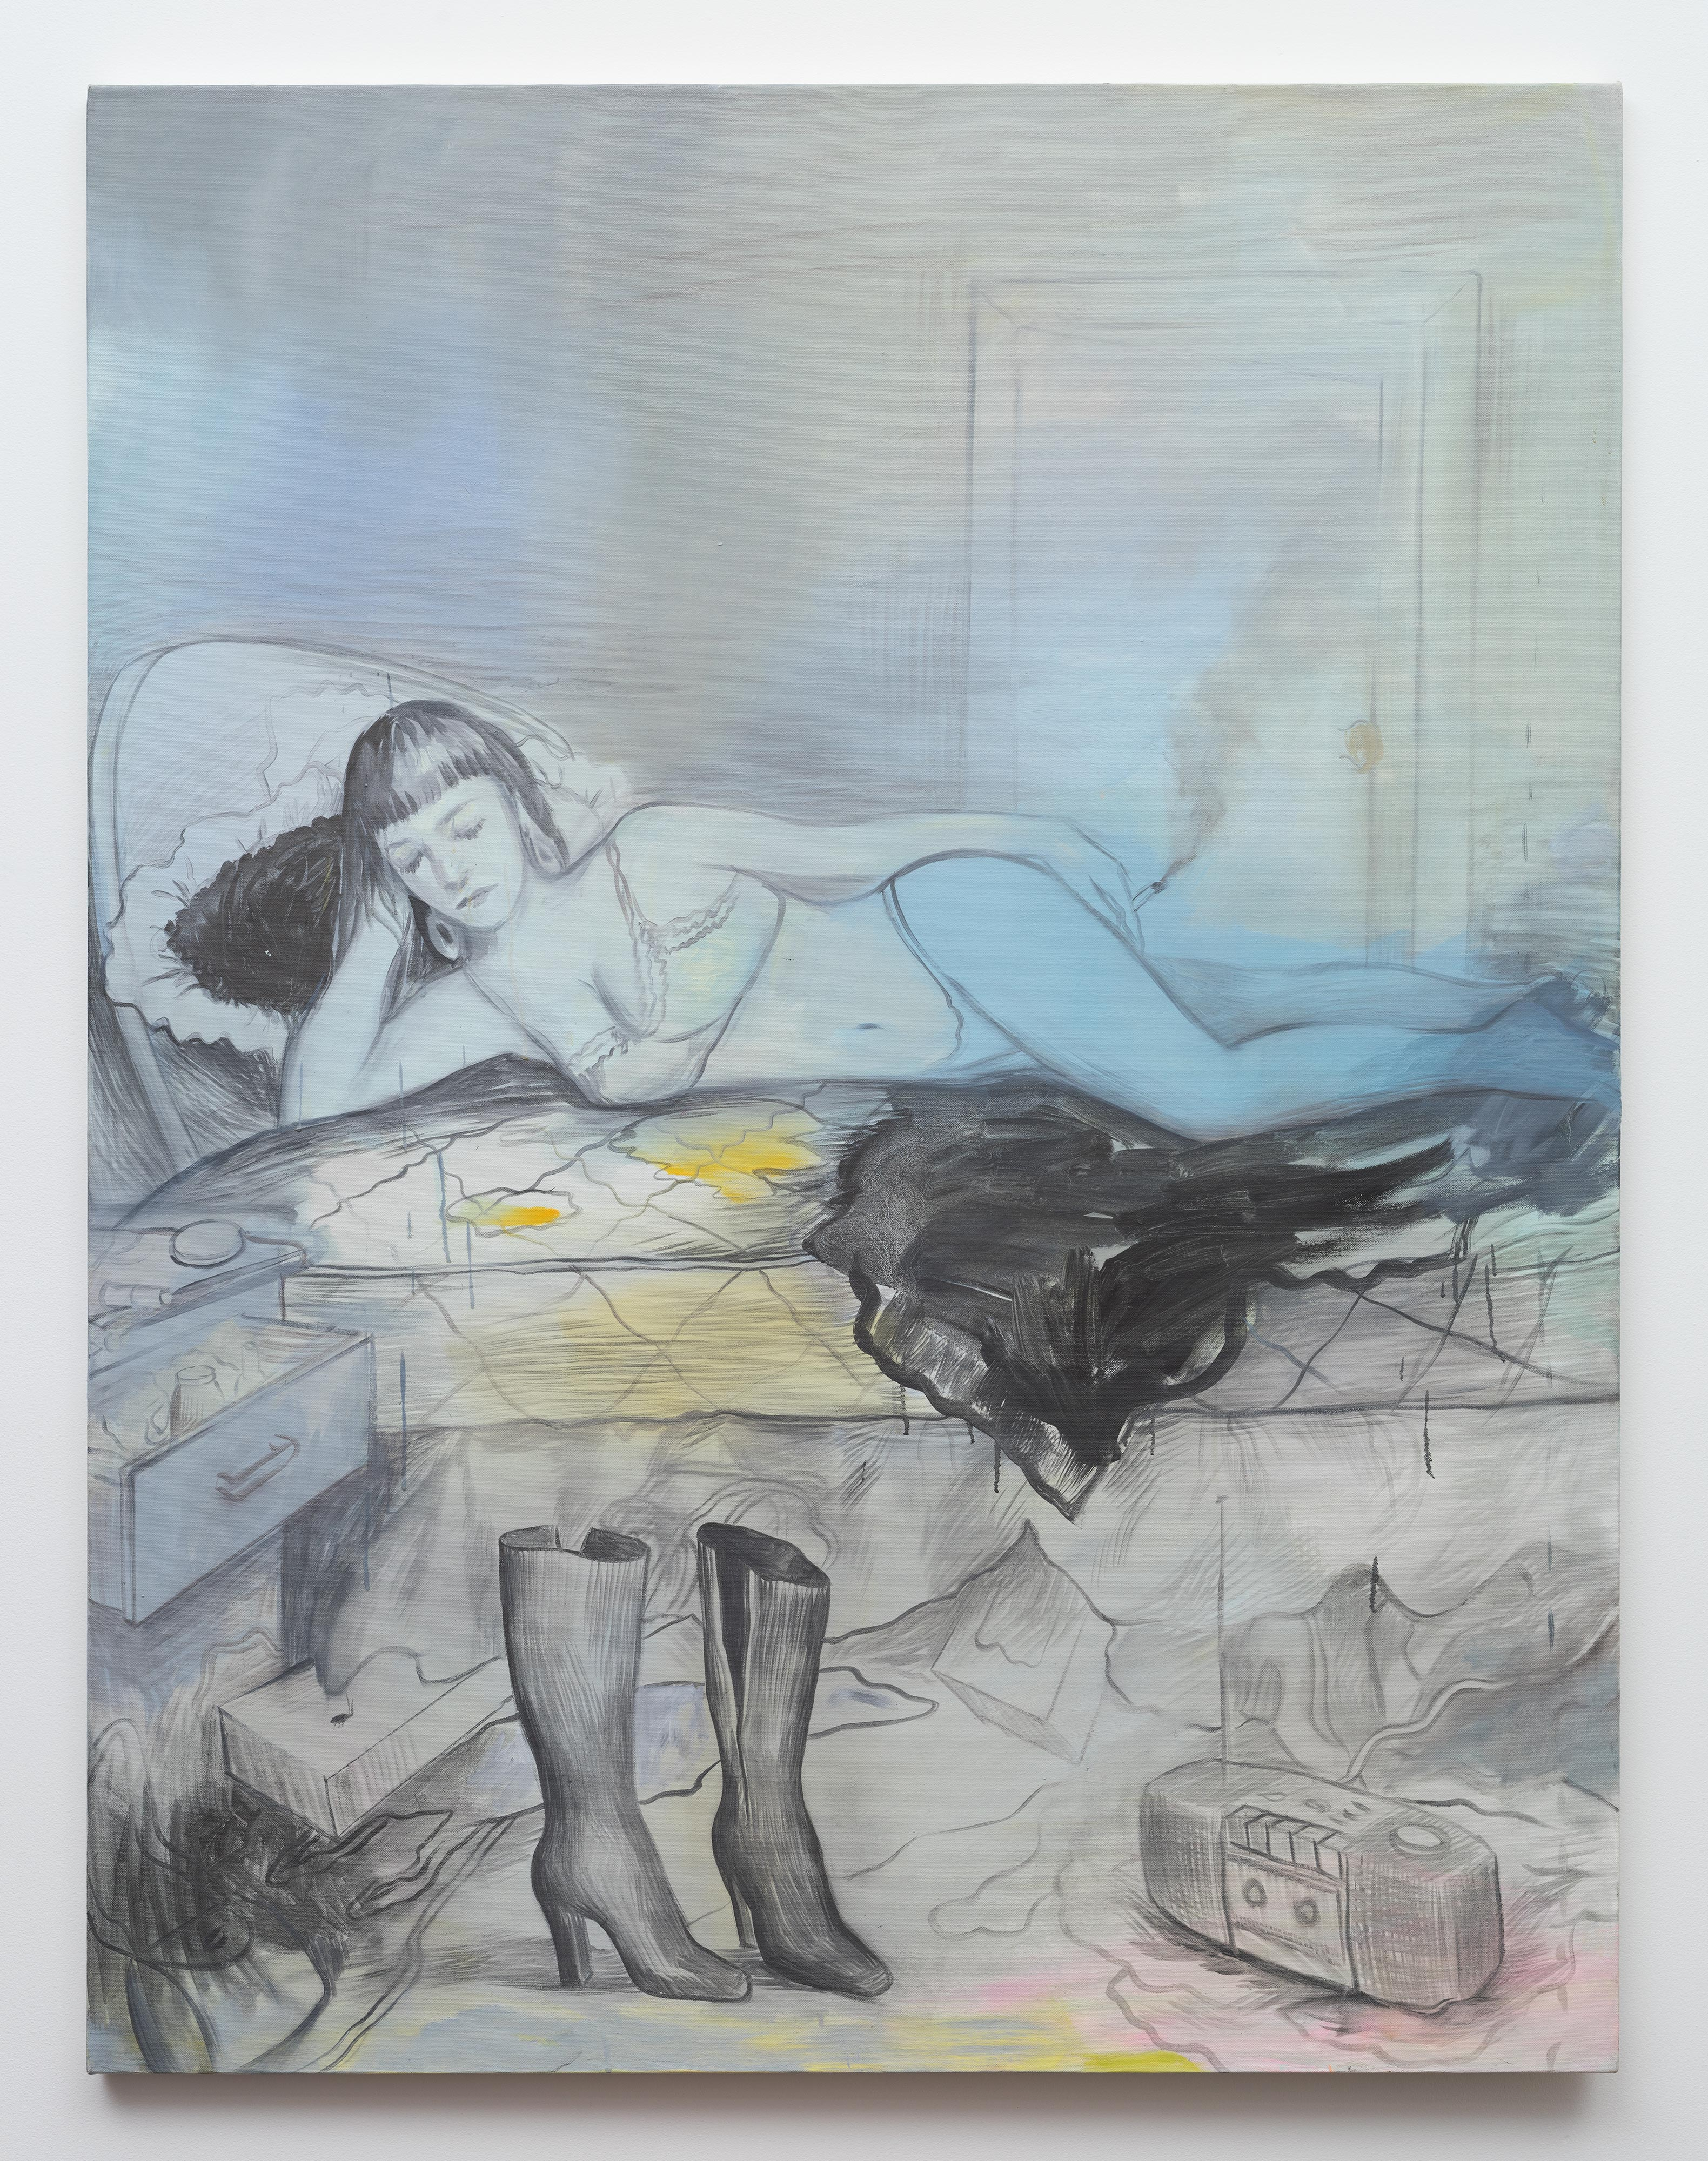 Brandi Twilley<br>Boots<br>2015<br>oil on canvas<br>62 x 48 in (157.48 x 121.92 cm)